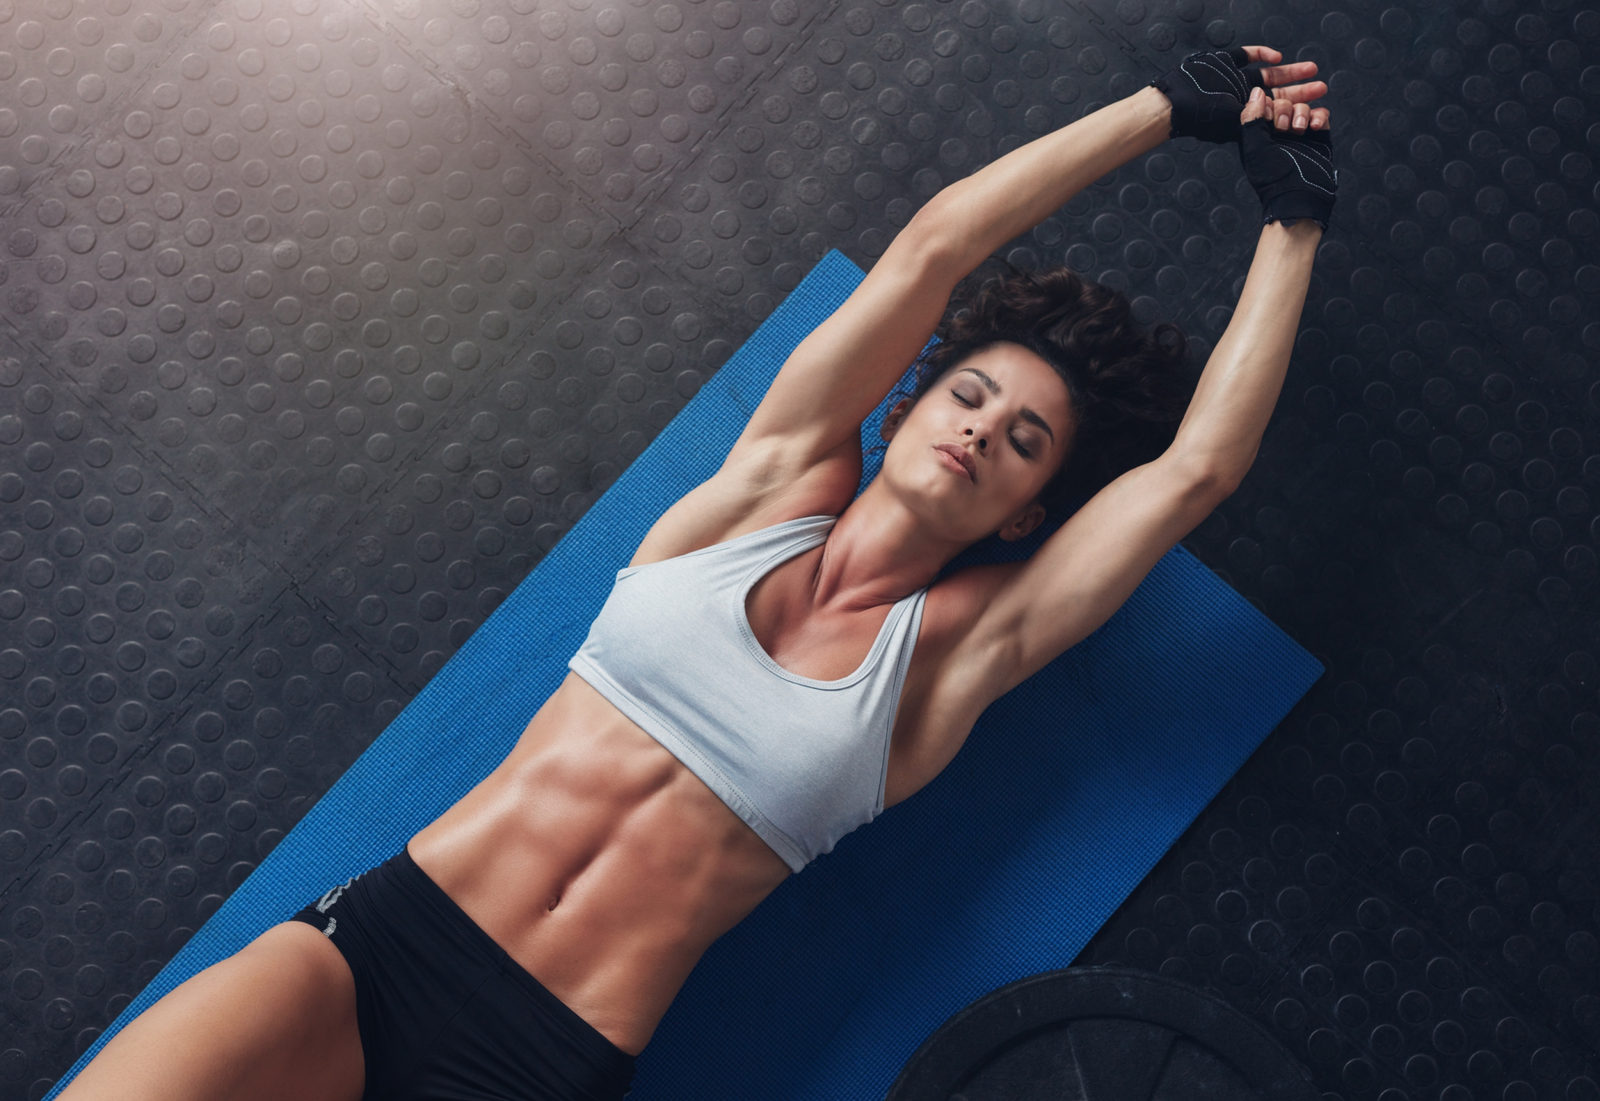 6 Tips for Improving Your Workout Warmup